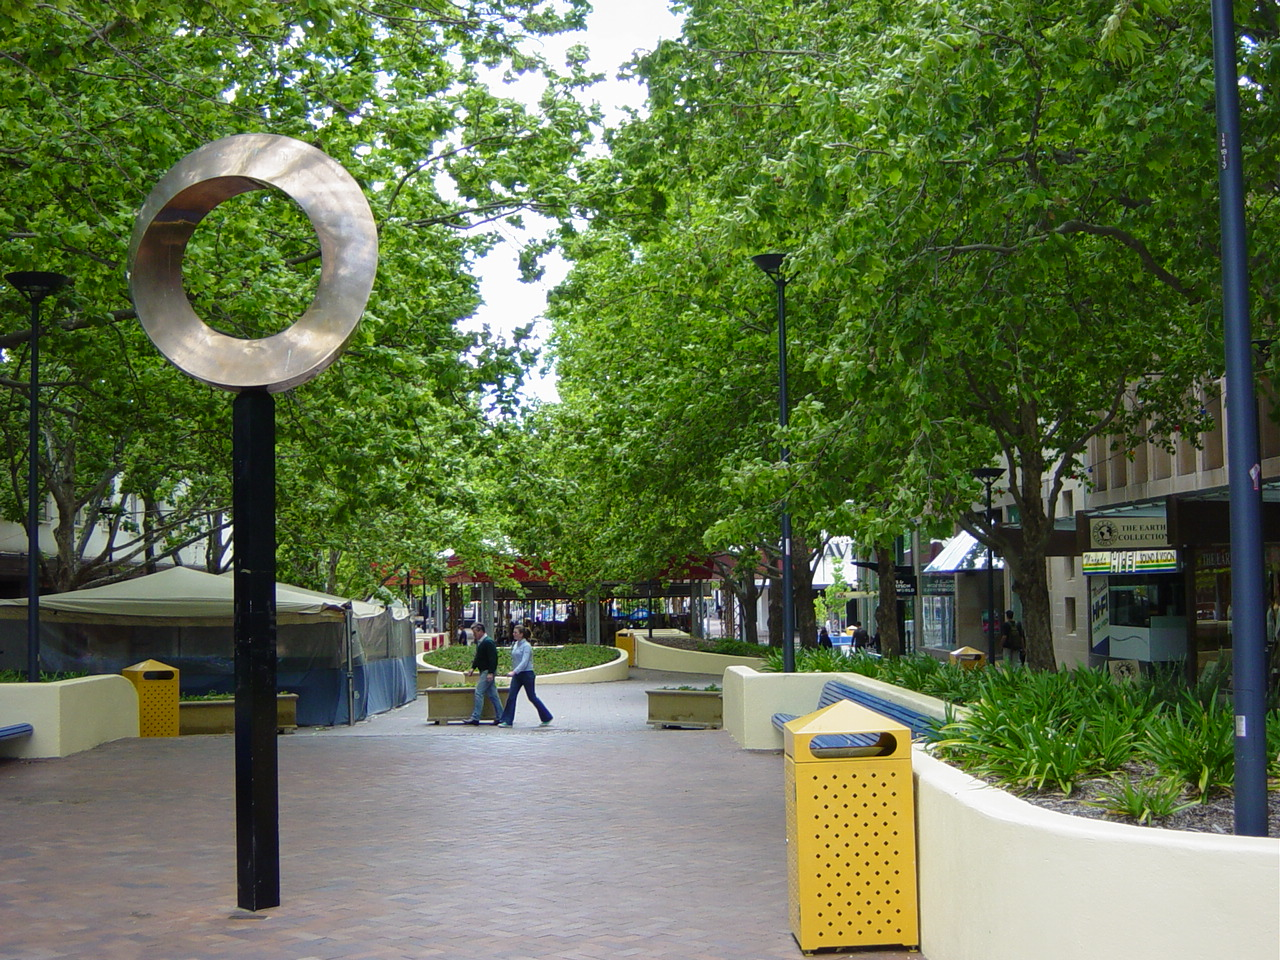 An urban pedestrian mall planted with trees and other vegetation